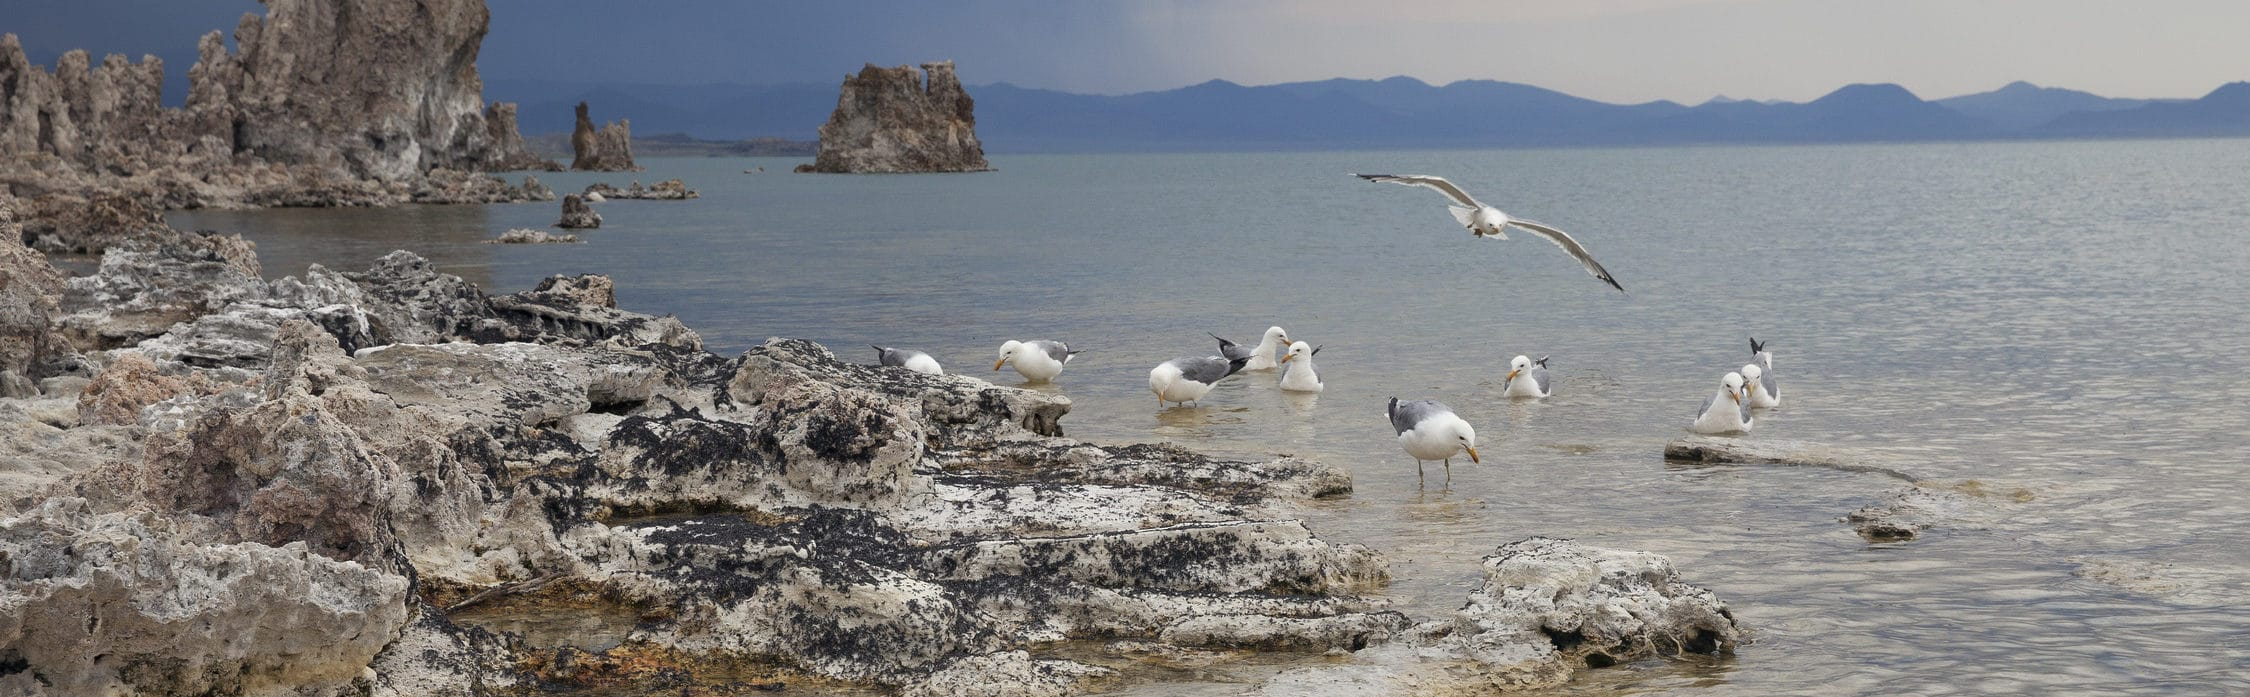 California Gulls walking, floating, and flying along the rocky, alkali fly-covered shore of Mono Lake as a storm comes in.